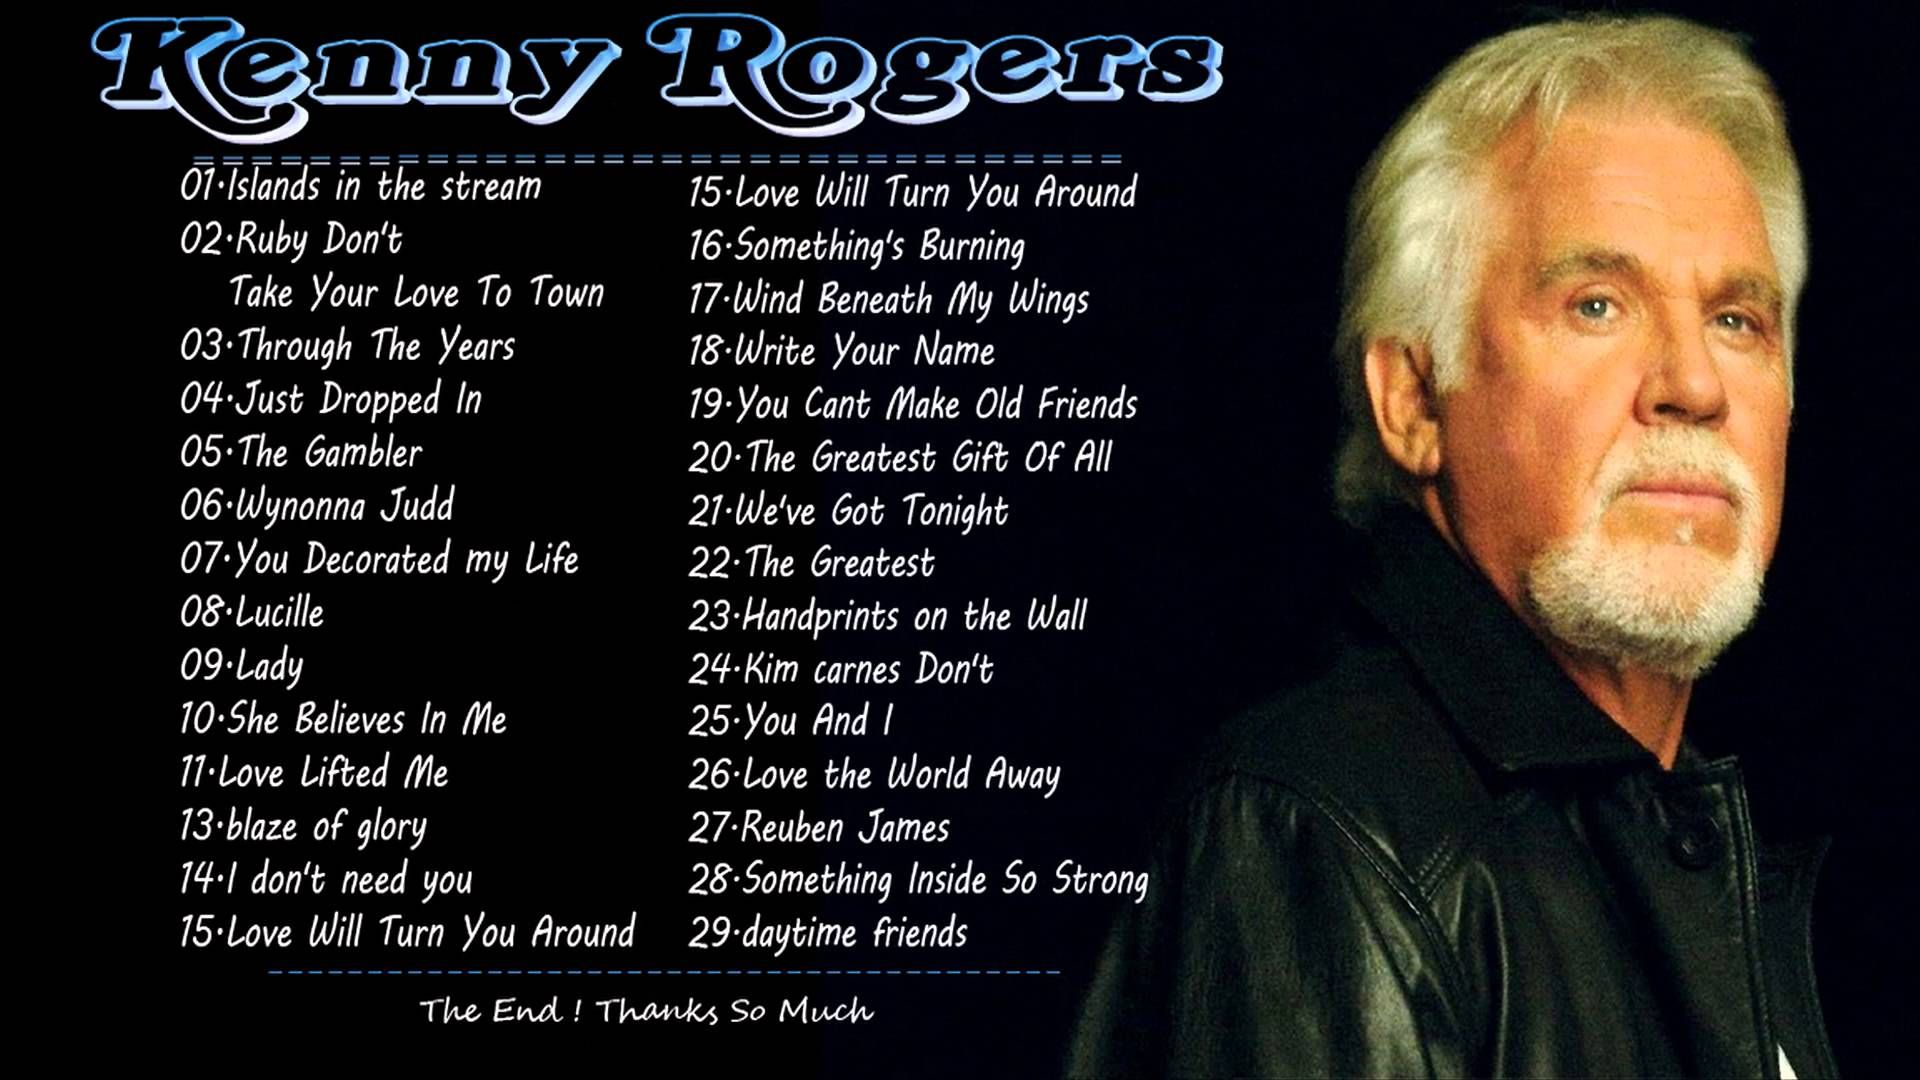 Kenny Rogers Greatest Hits Full Album | Best Songs Of Kenny Rogers ...